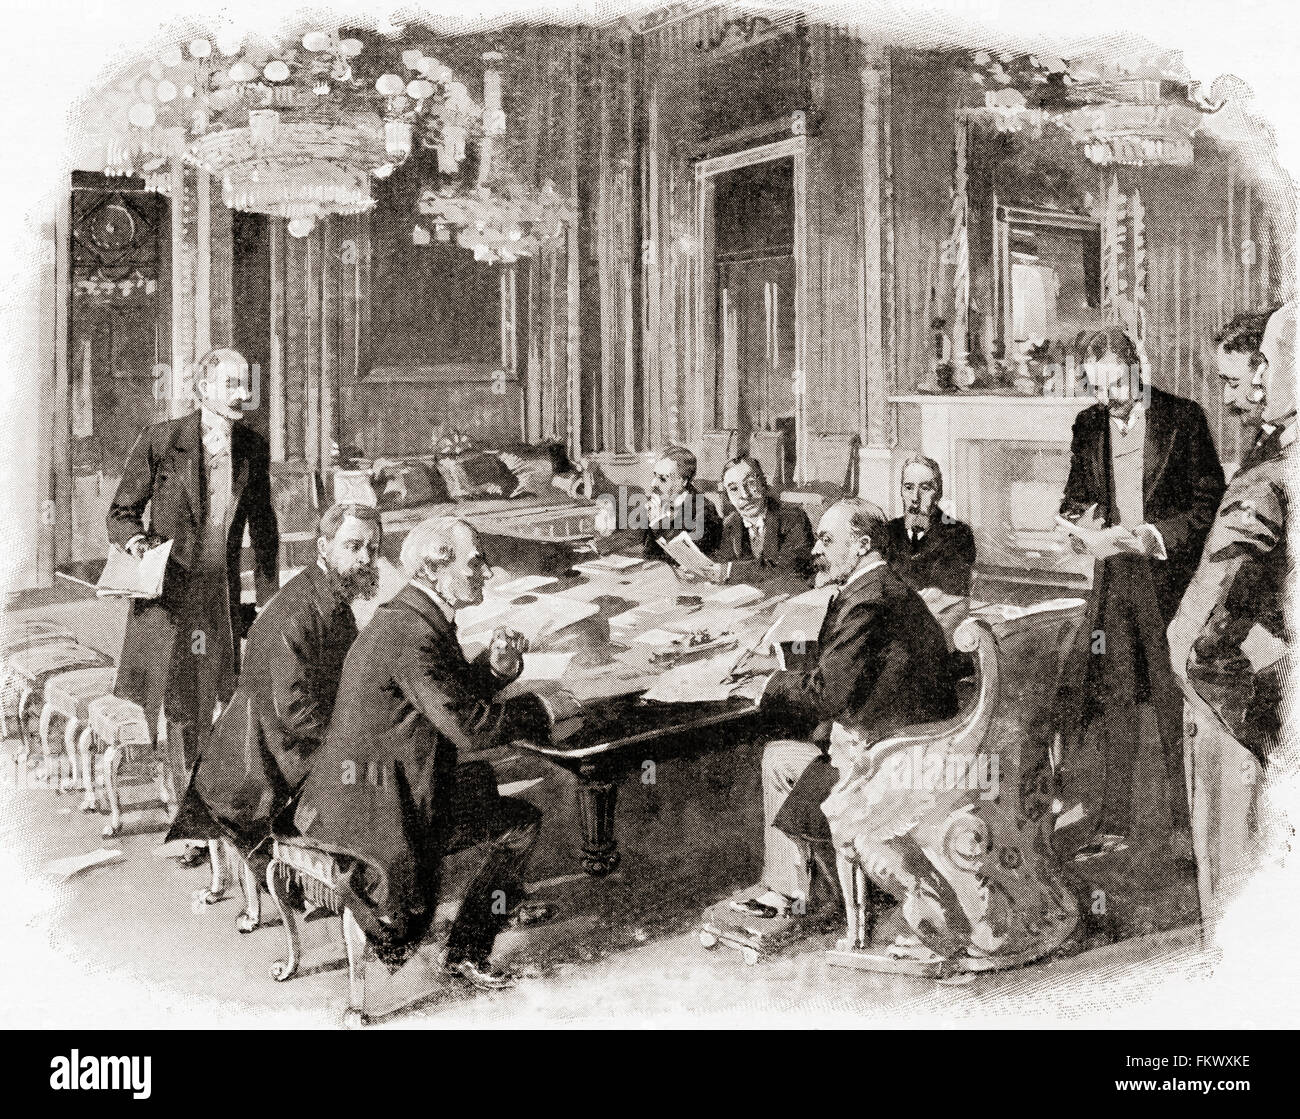 King Edward VII at a privy council meeting at Buckingham Palace, London, England in the late 19th century.  Edward - Stock Image